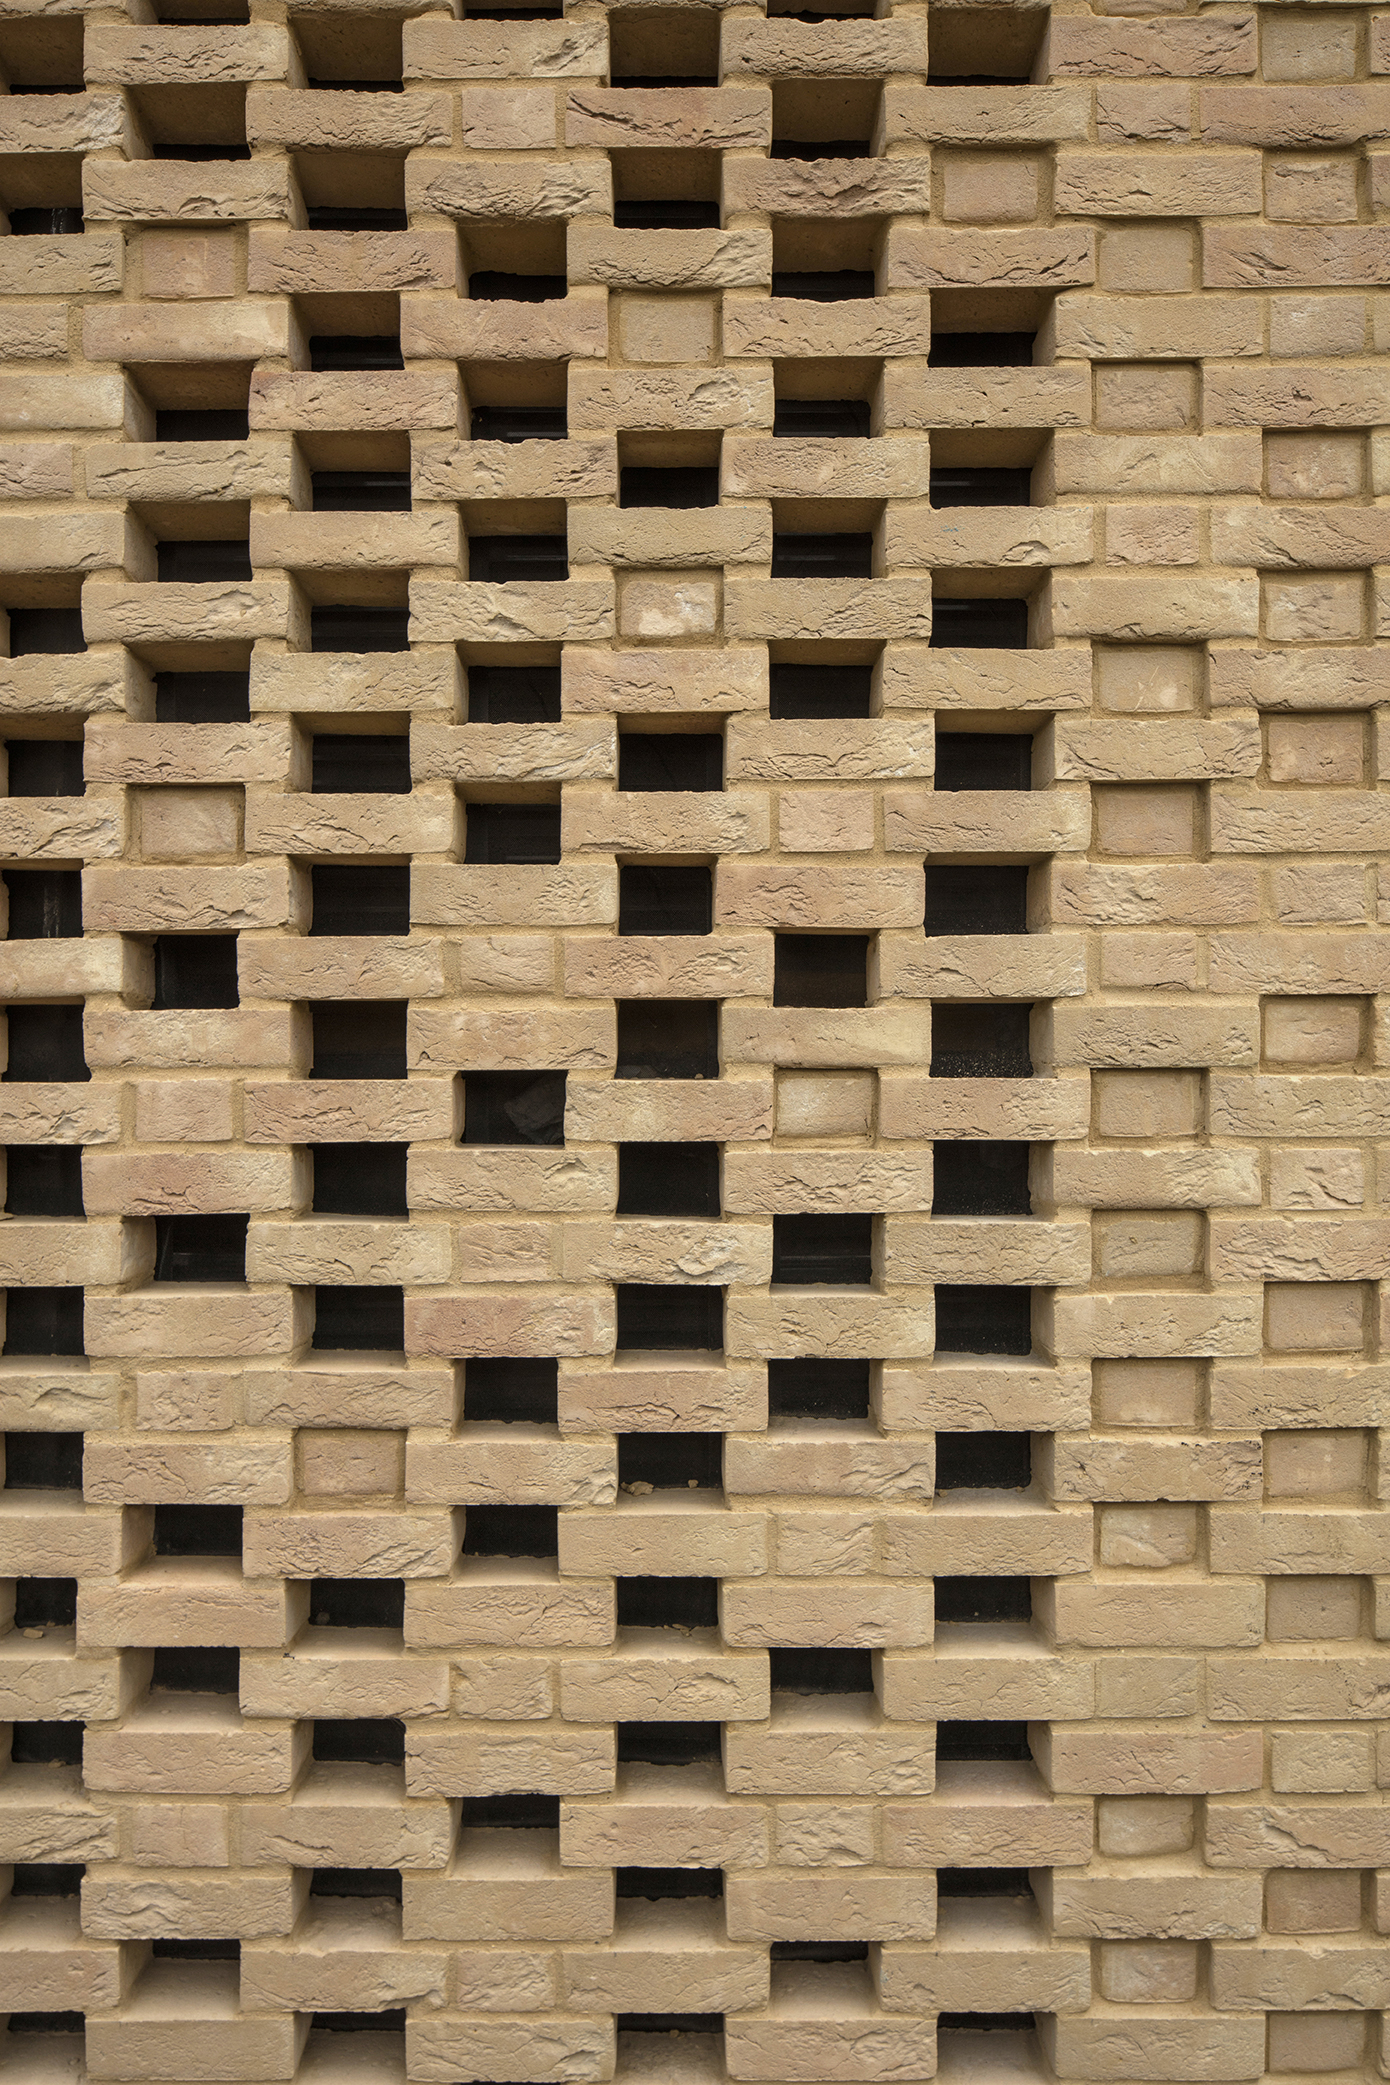 brickwork - University of Cambridge Primary School by Marks Barfield Architects